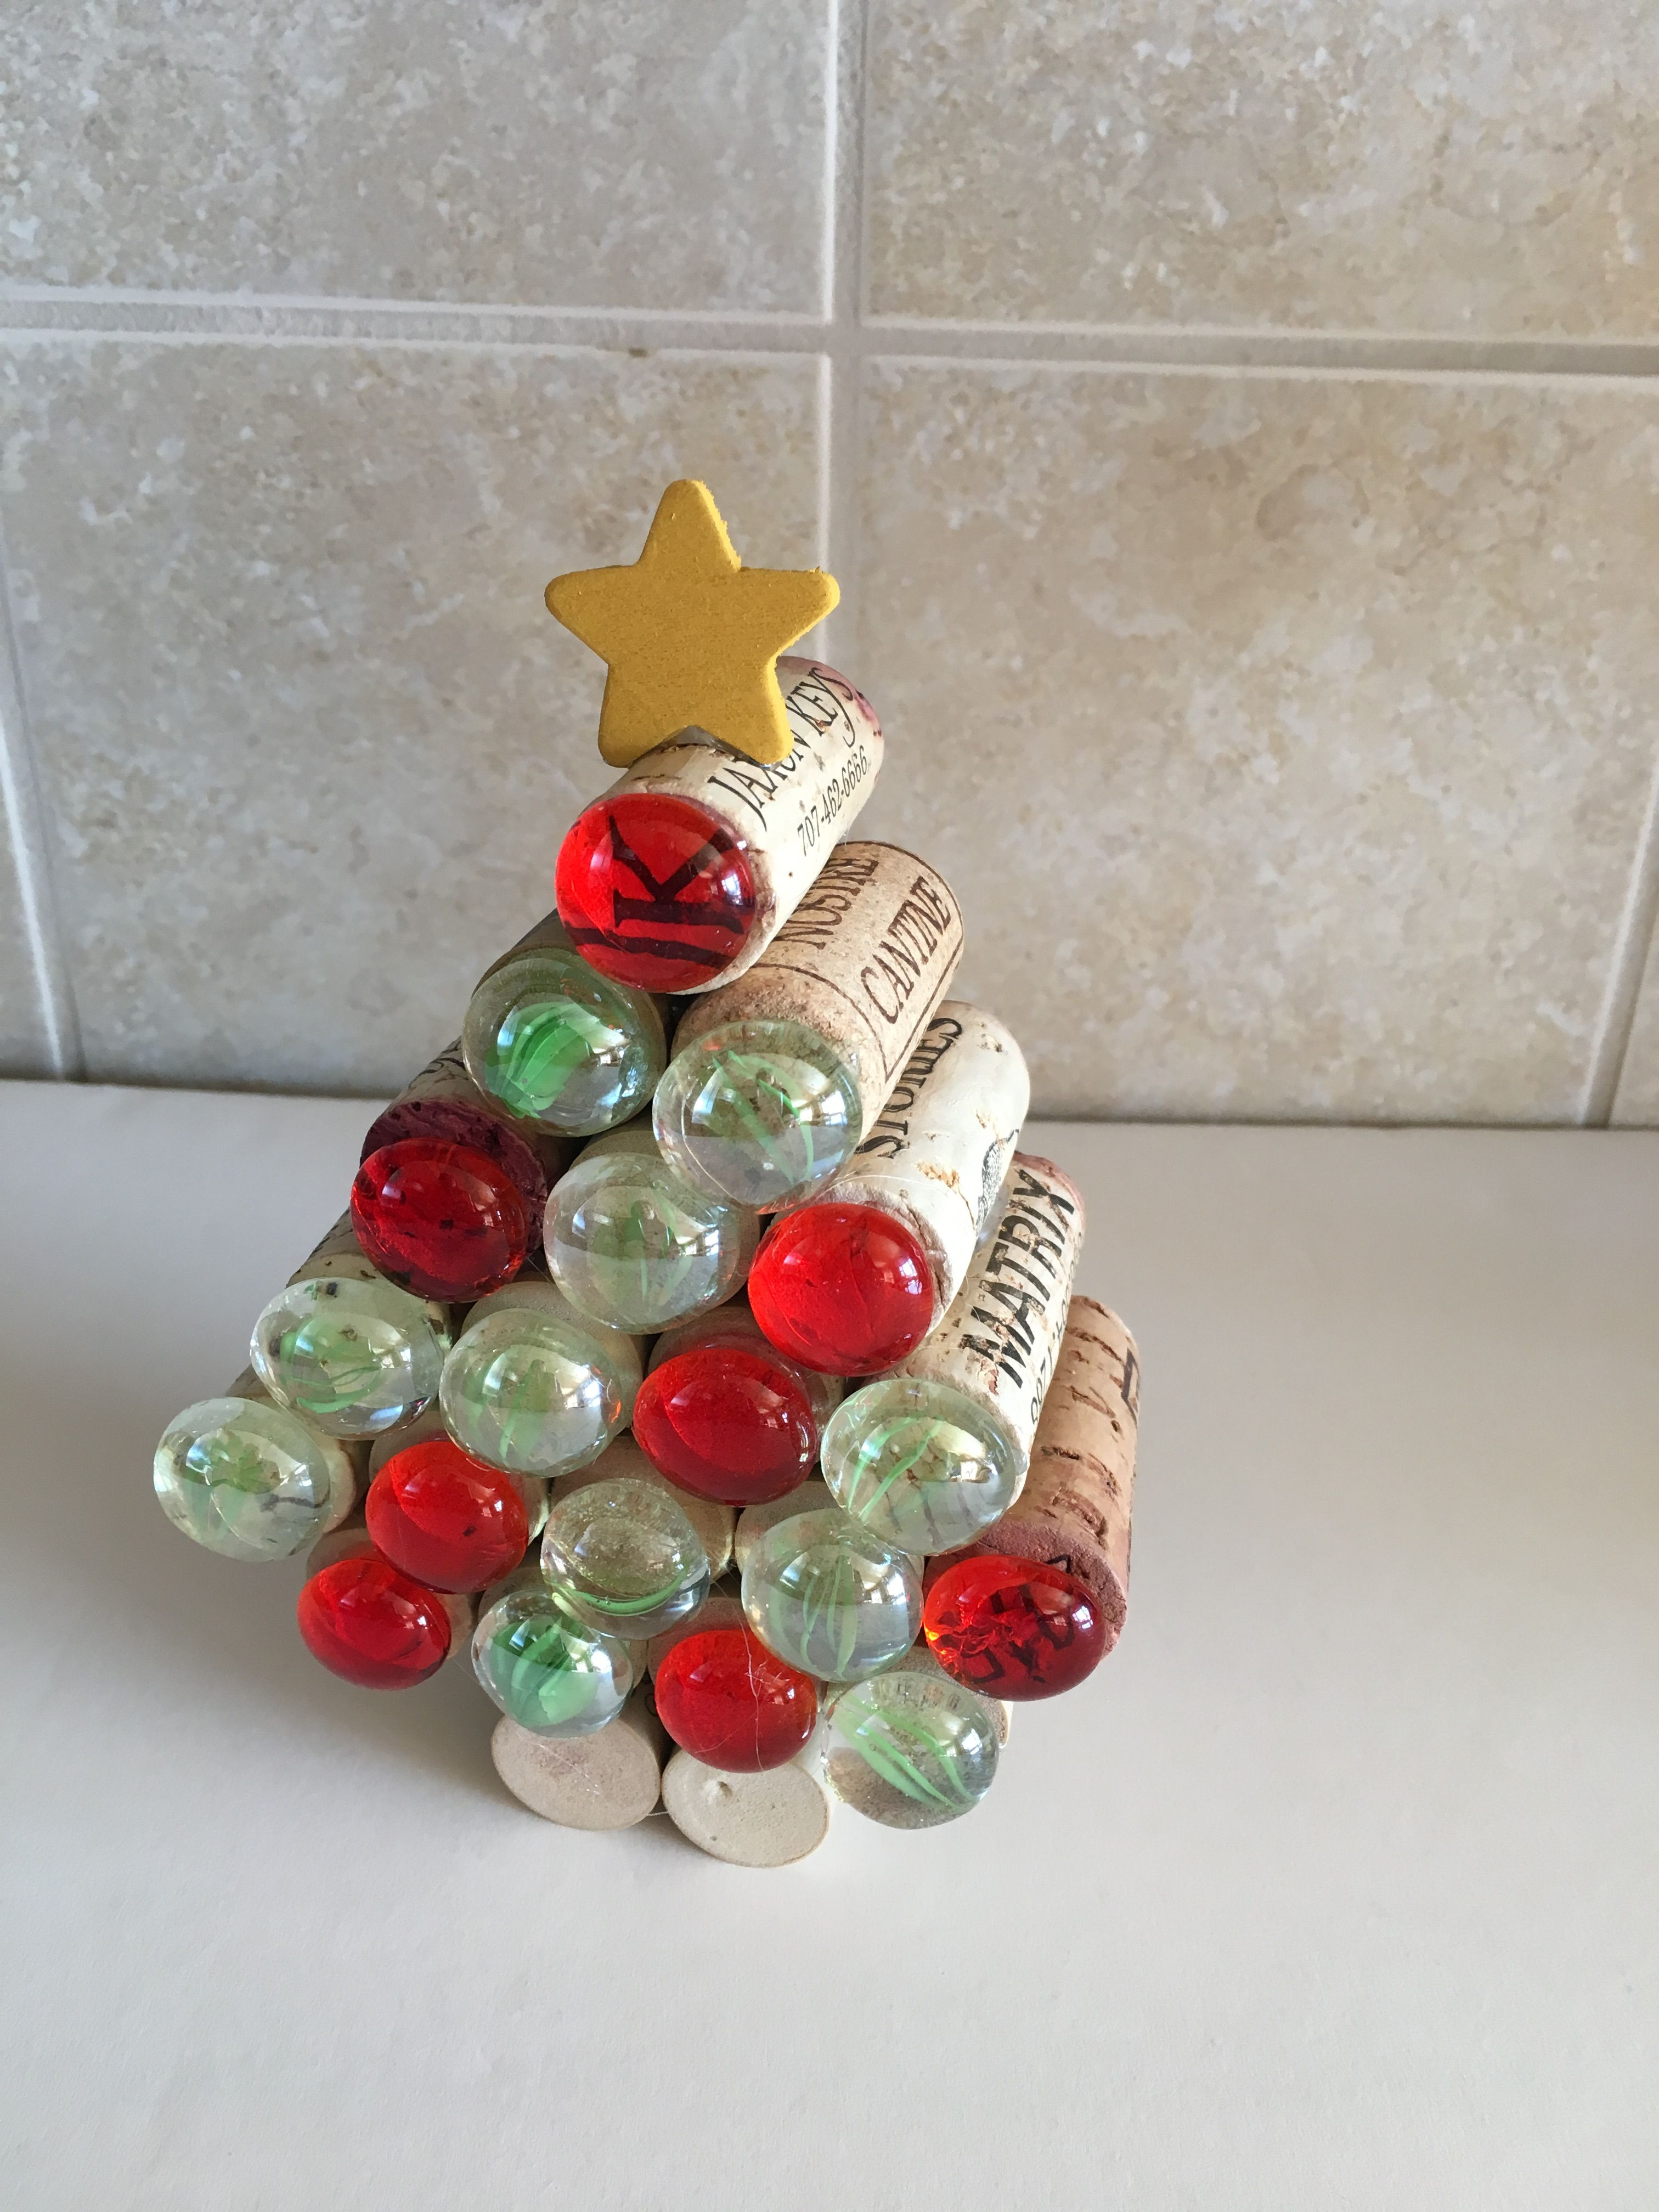 Christmas Tree Made With Wine Corks Crafts Christmas Decorations Ornament Wreath